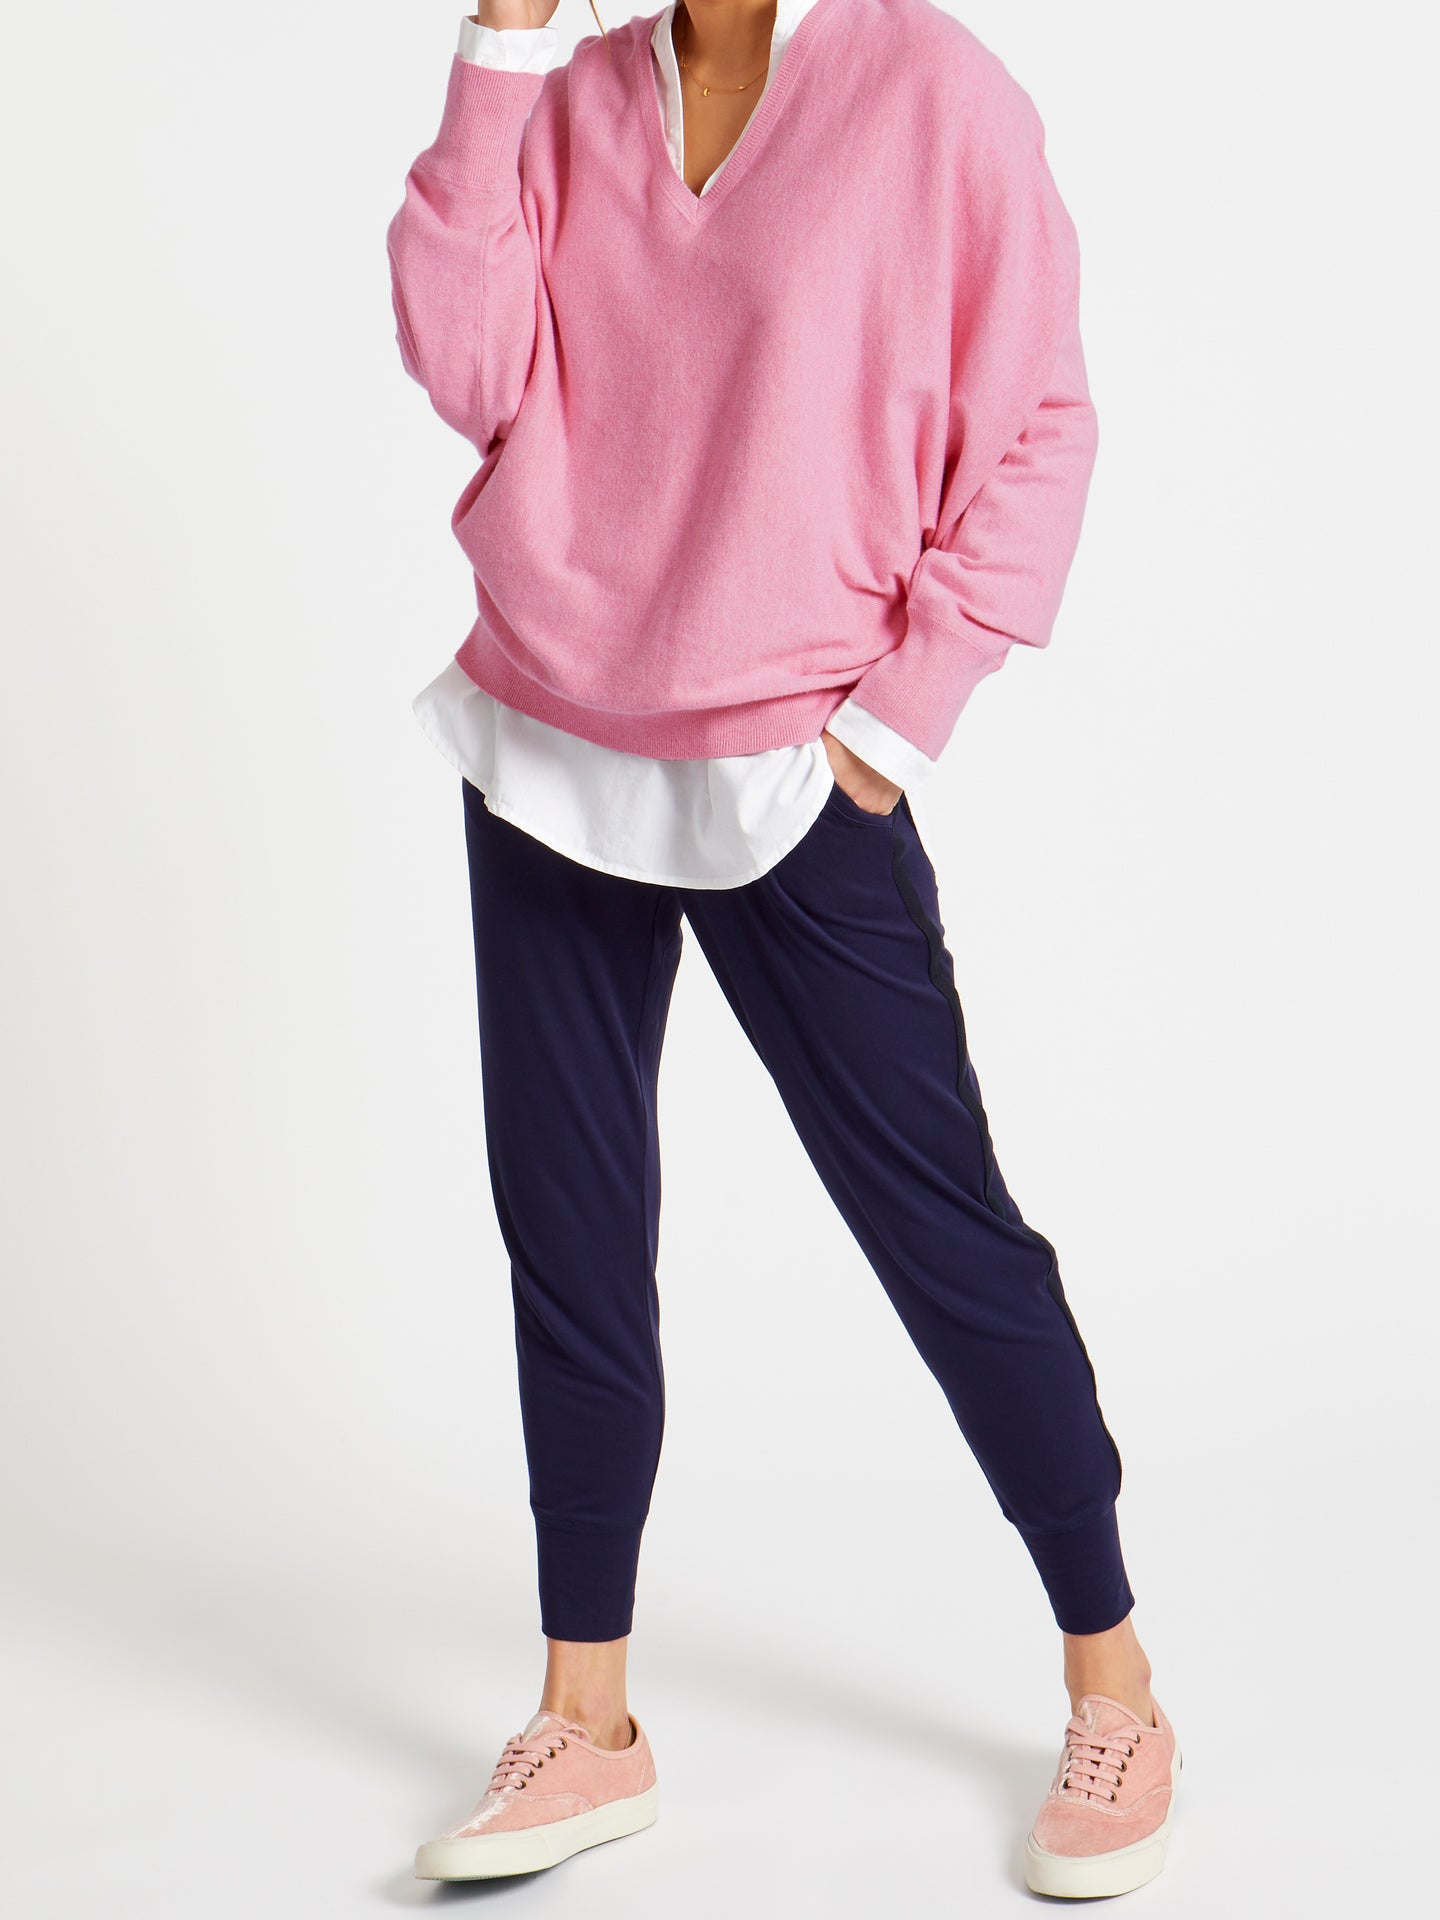 Sleepy Joe vee cashmere blend sweater